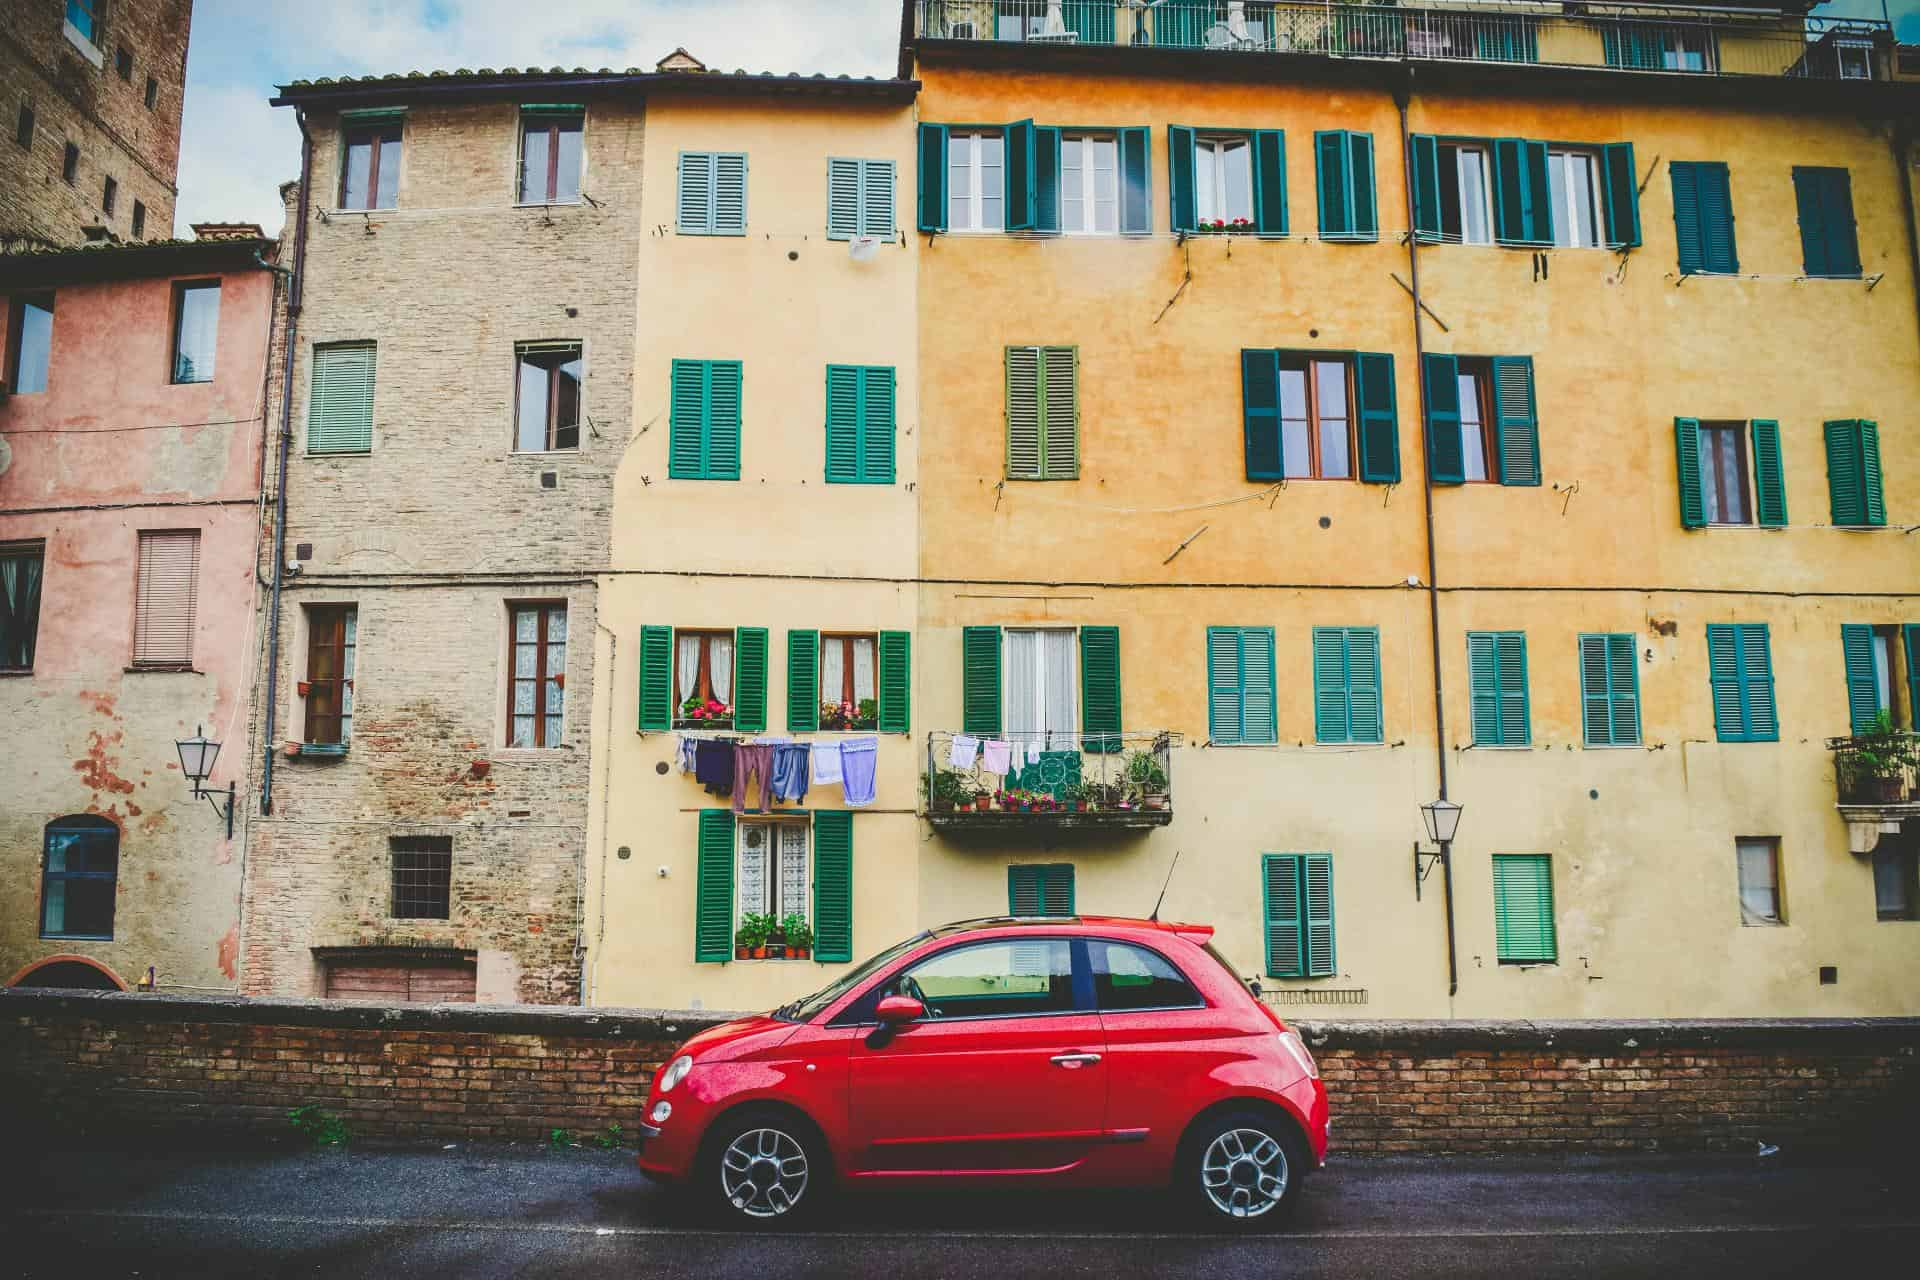 Driving in Italy - car rental, driving tips and road rules